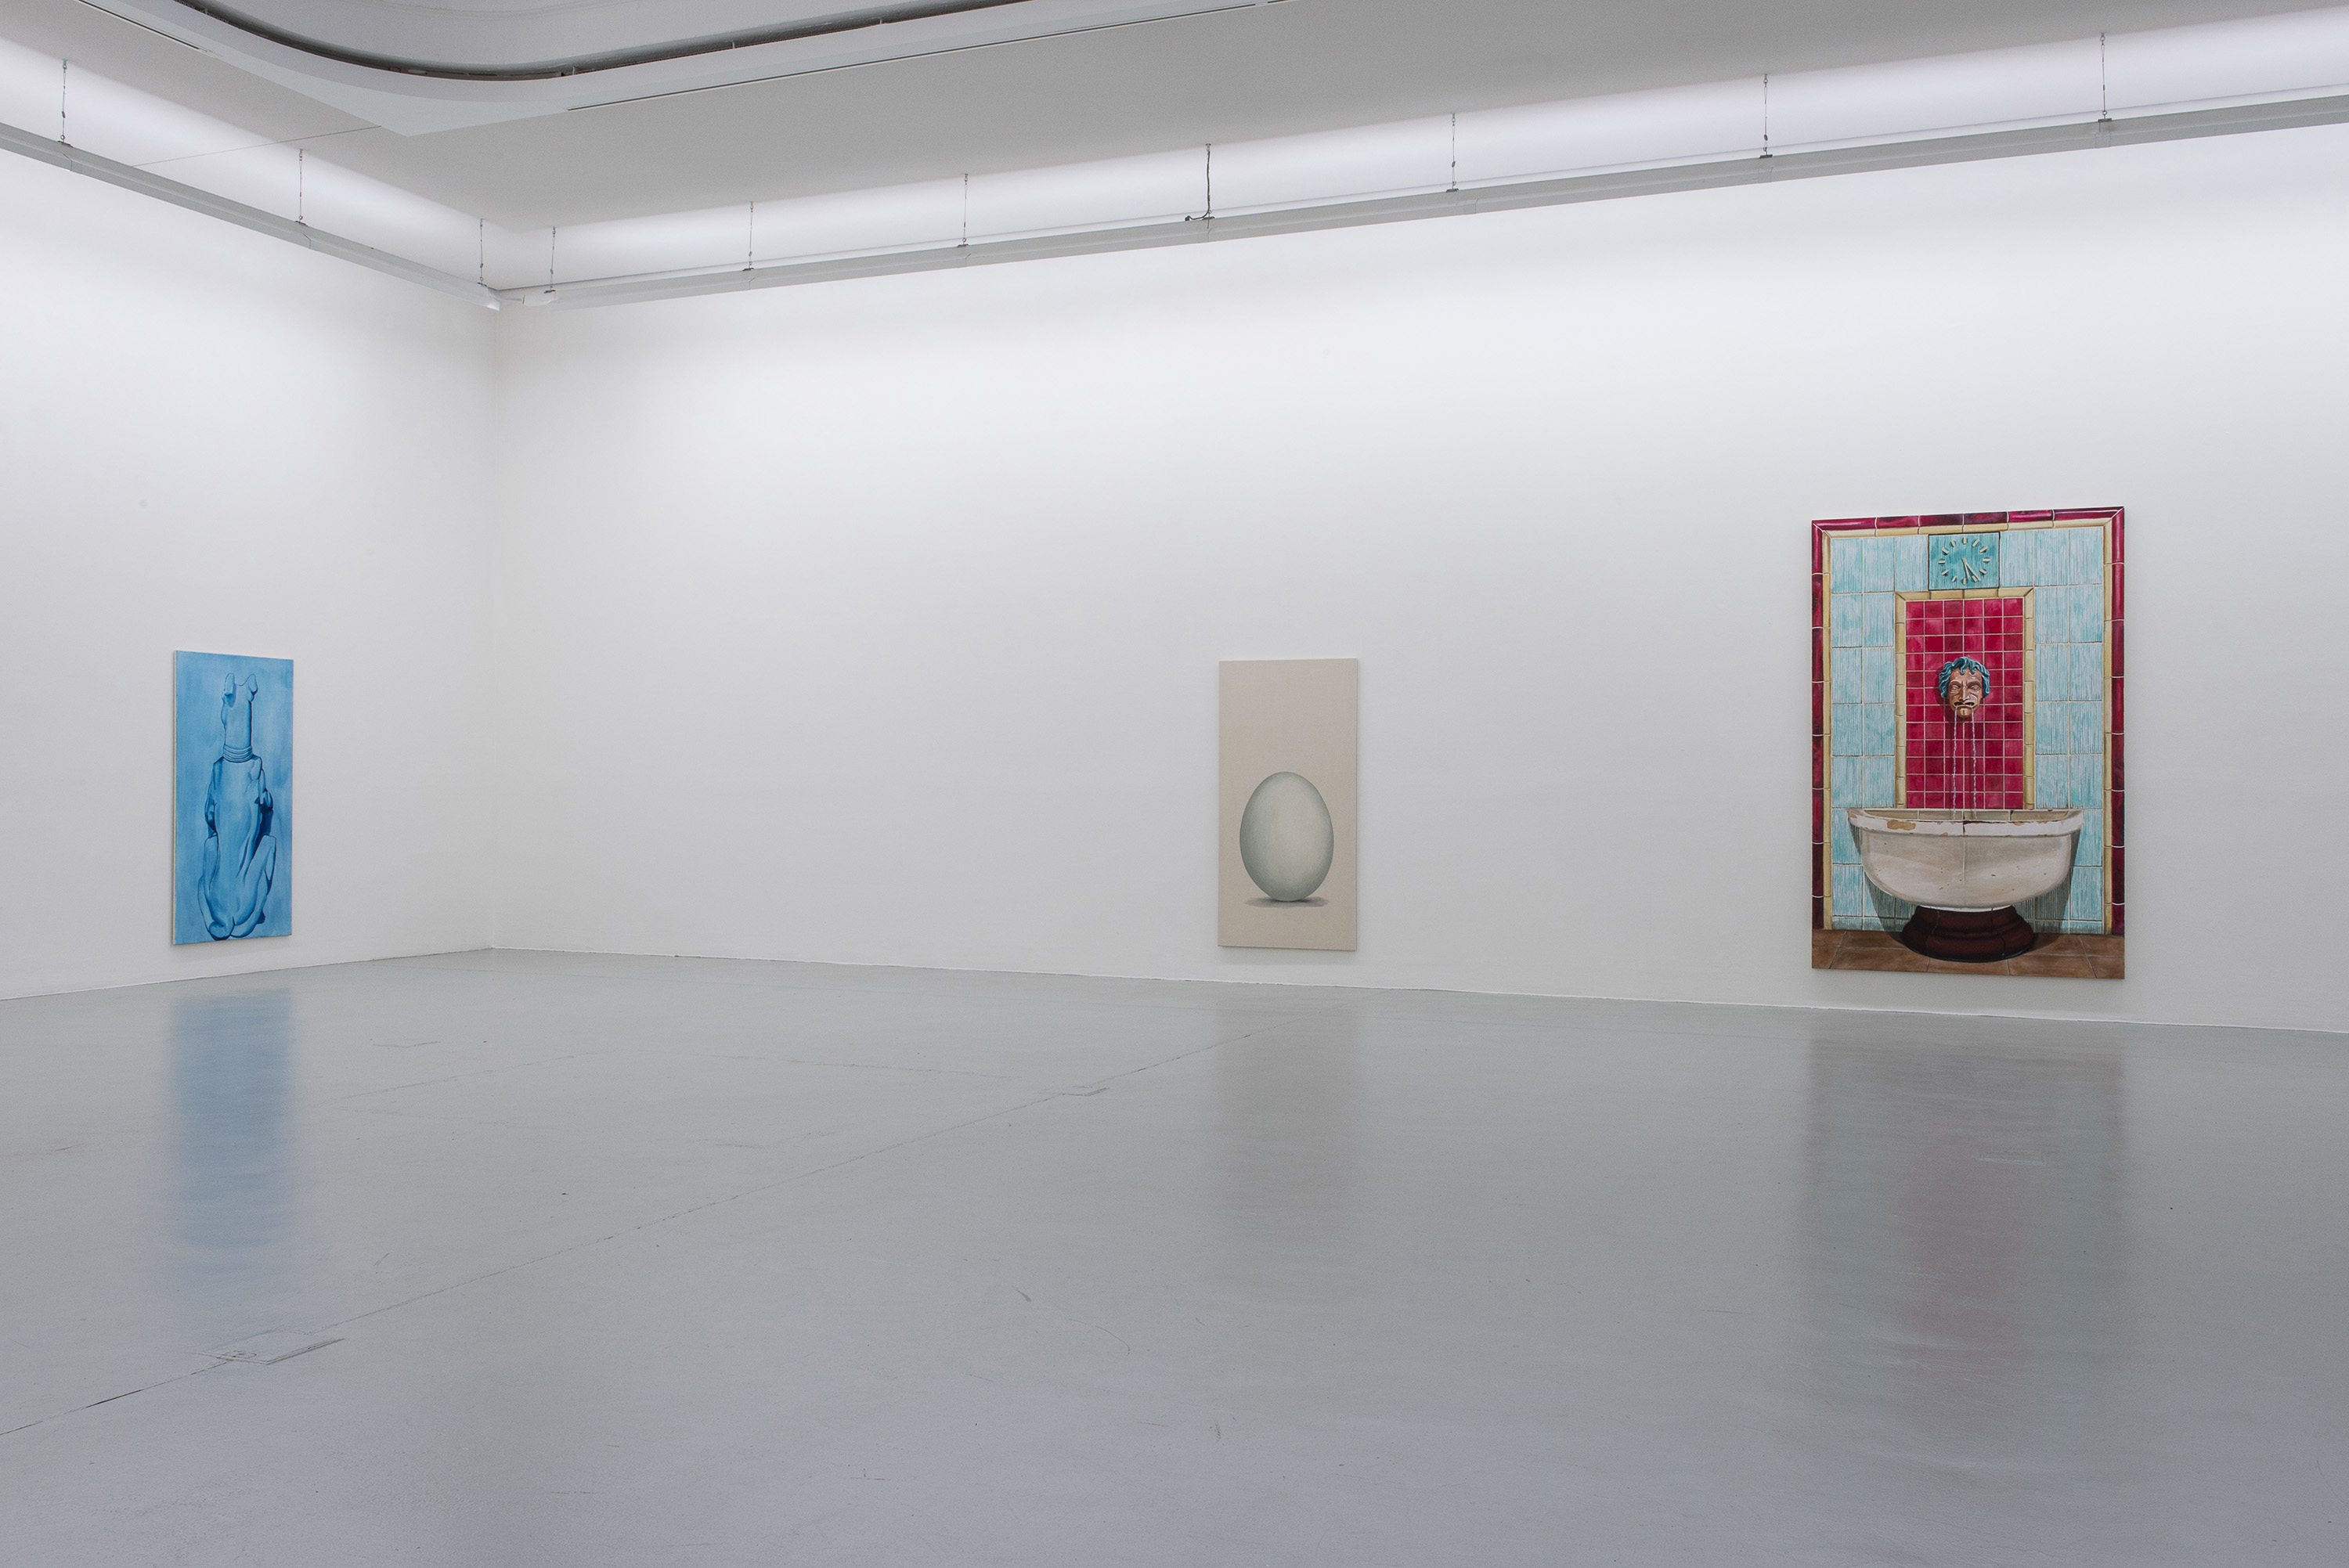 10 - Allison Katz at Kunstverein Fribourg